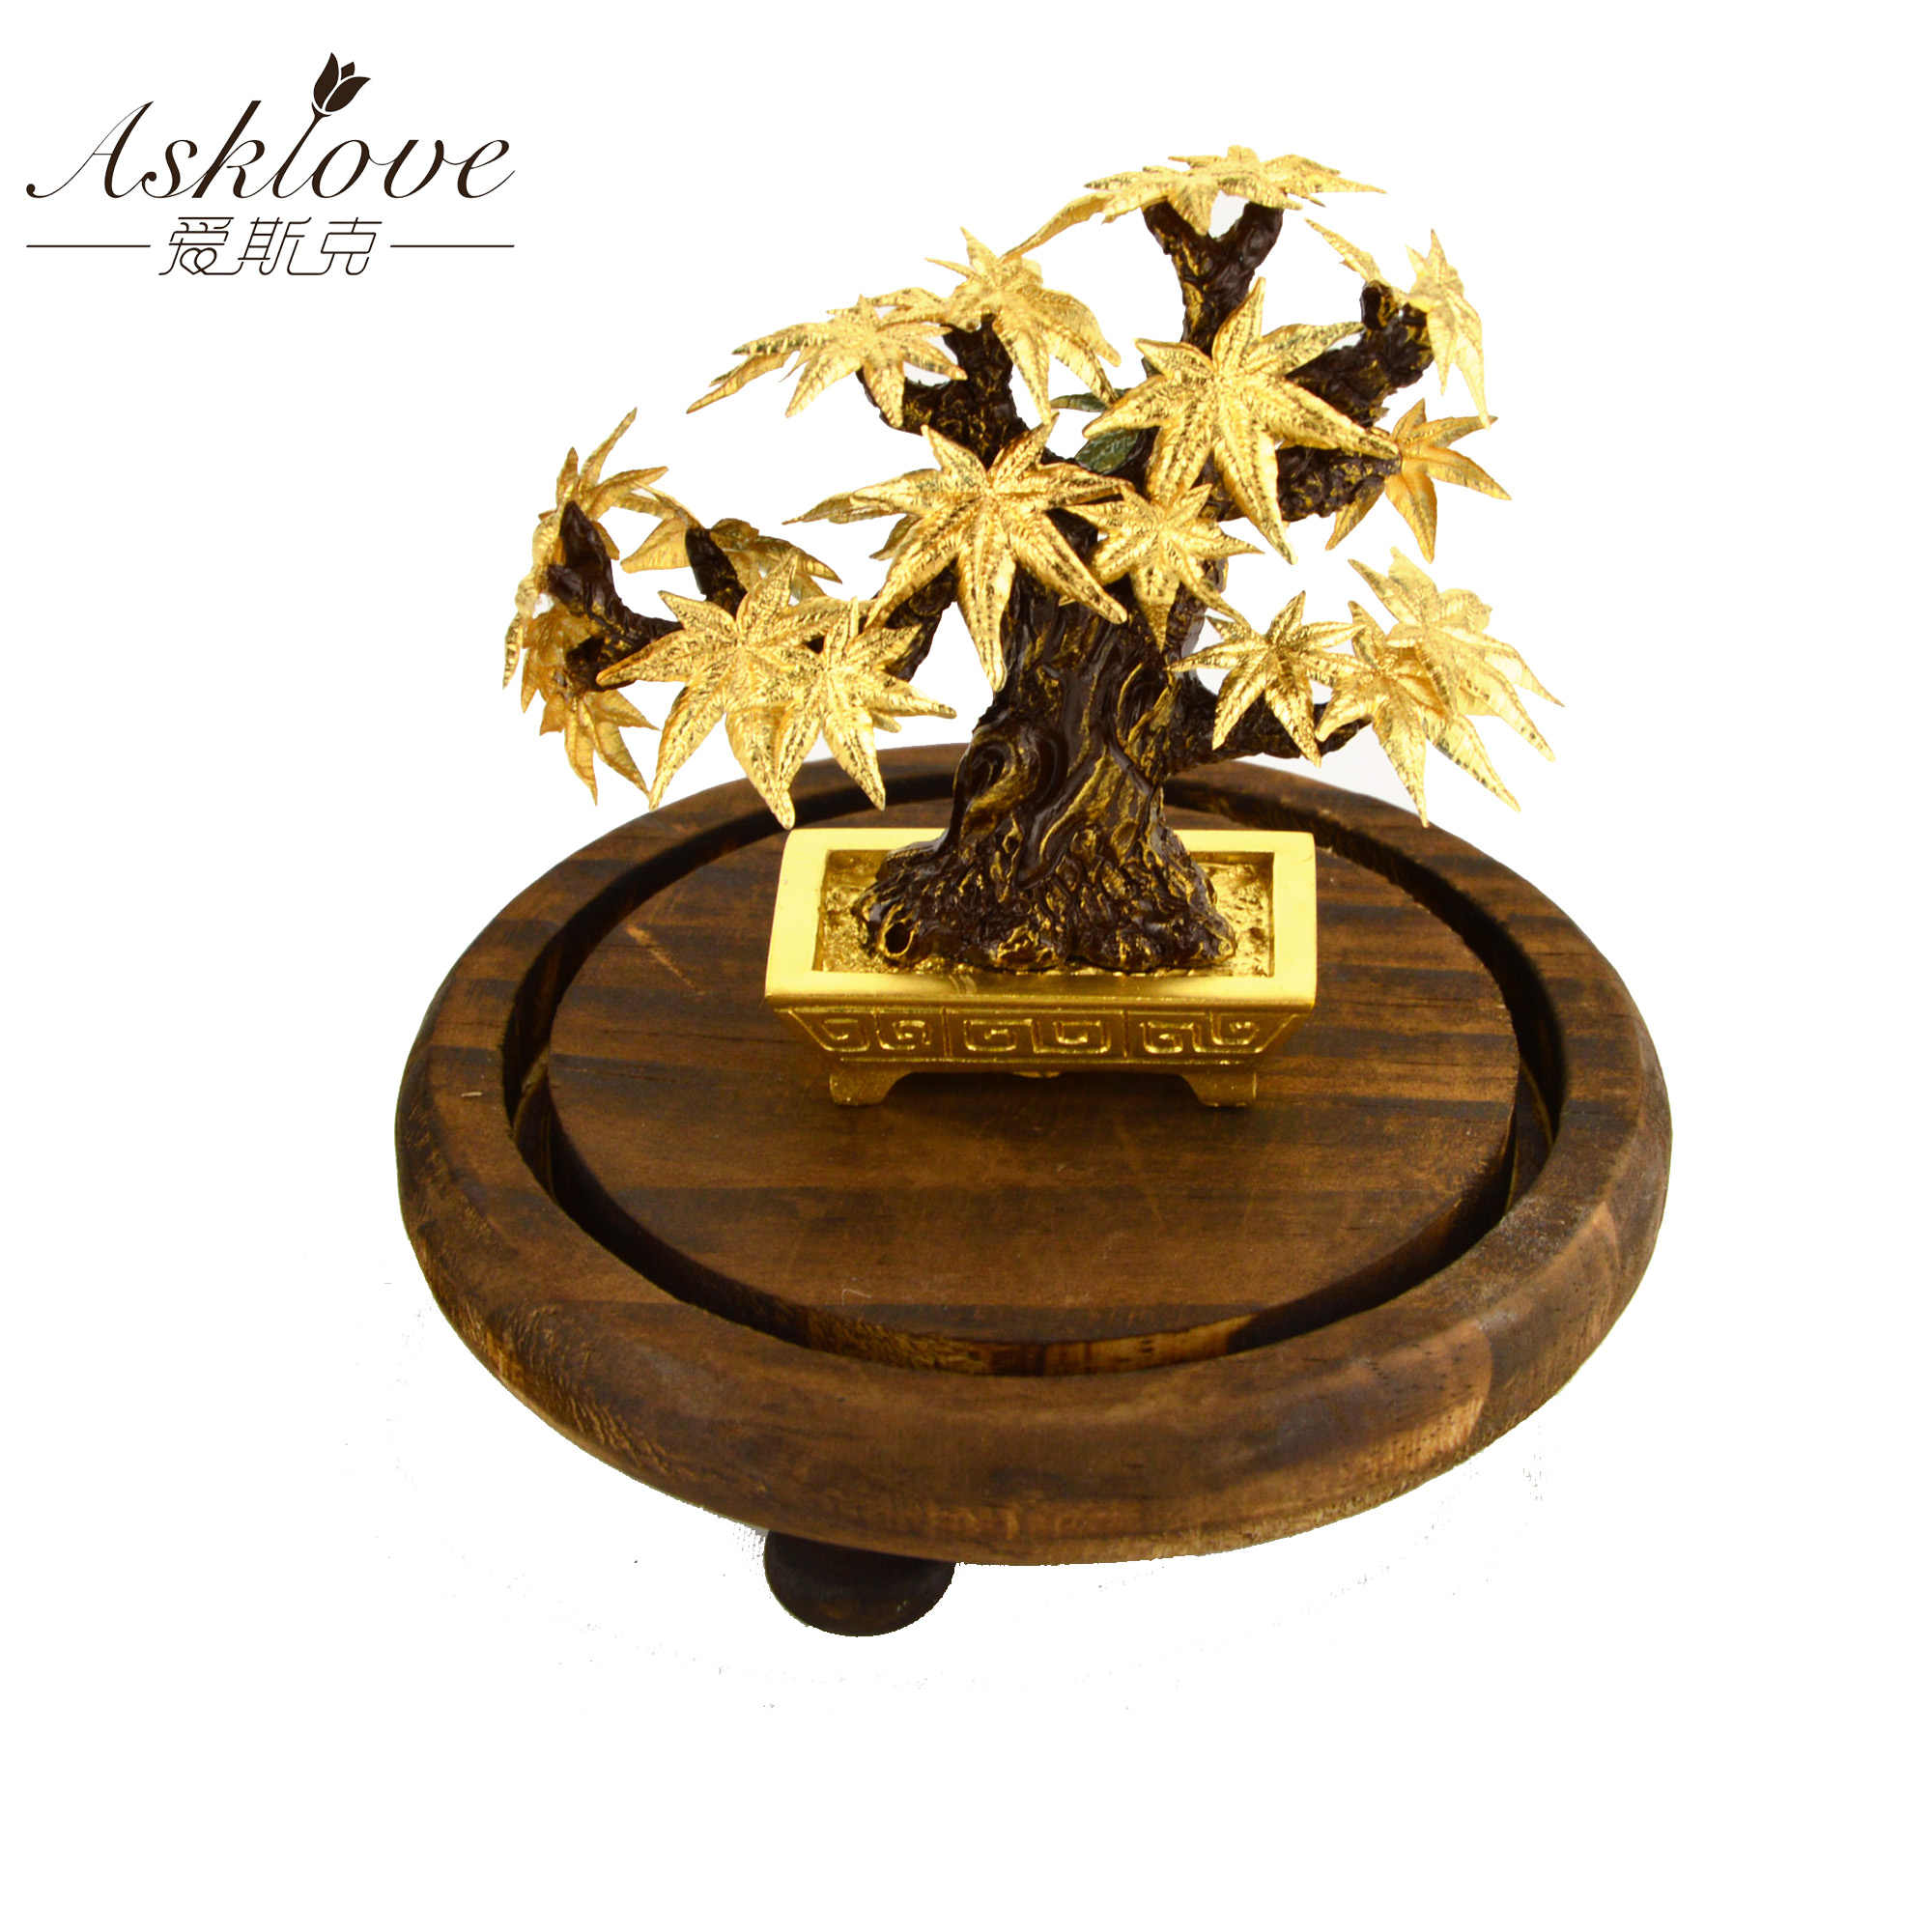 Esdoorn Bonsai Feng Shui Decor Lucky Rijkdom Ornament 24 K Goud Folie Maple Leaf Office Desktop Ornamenten Home Decoratie geschenken